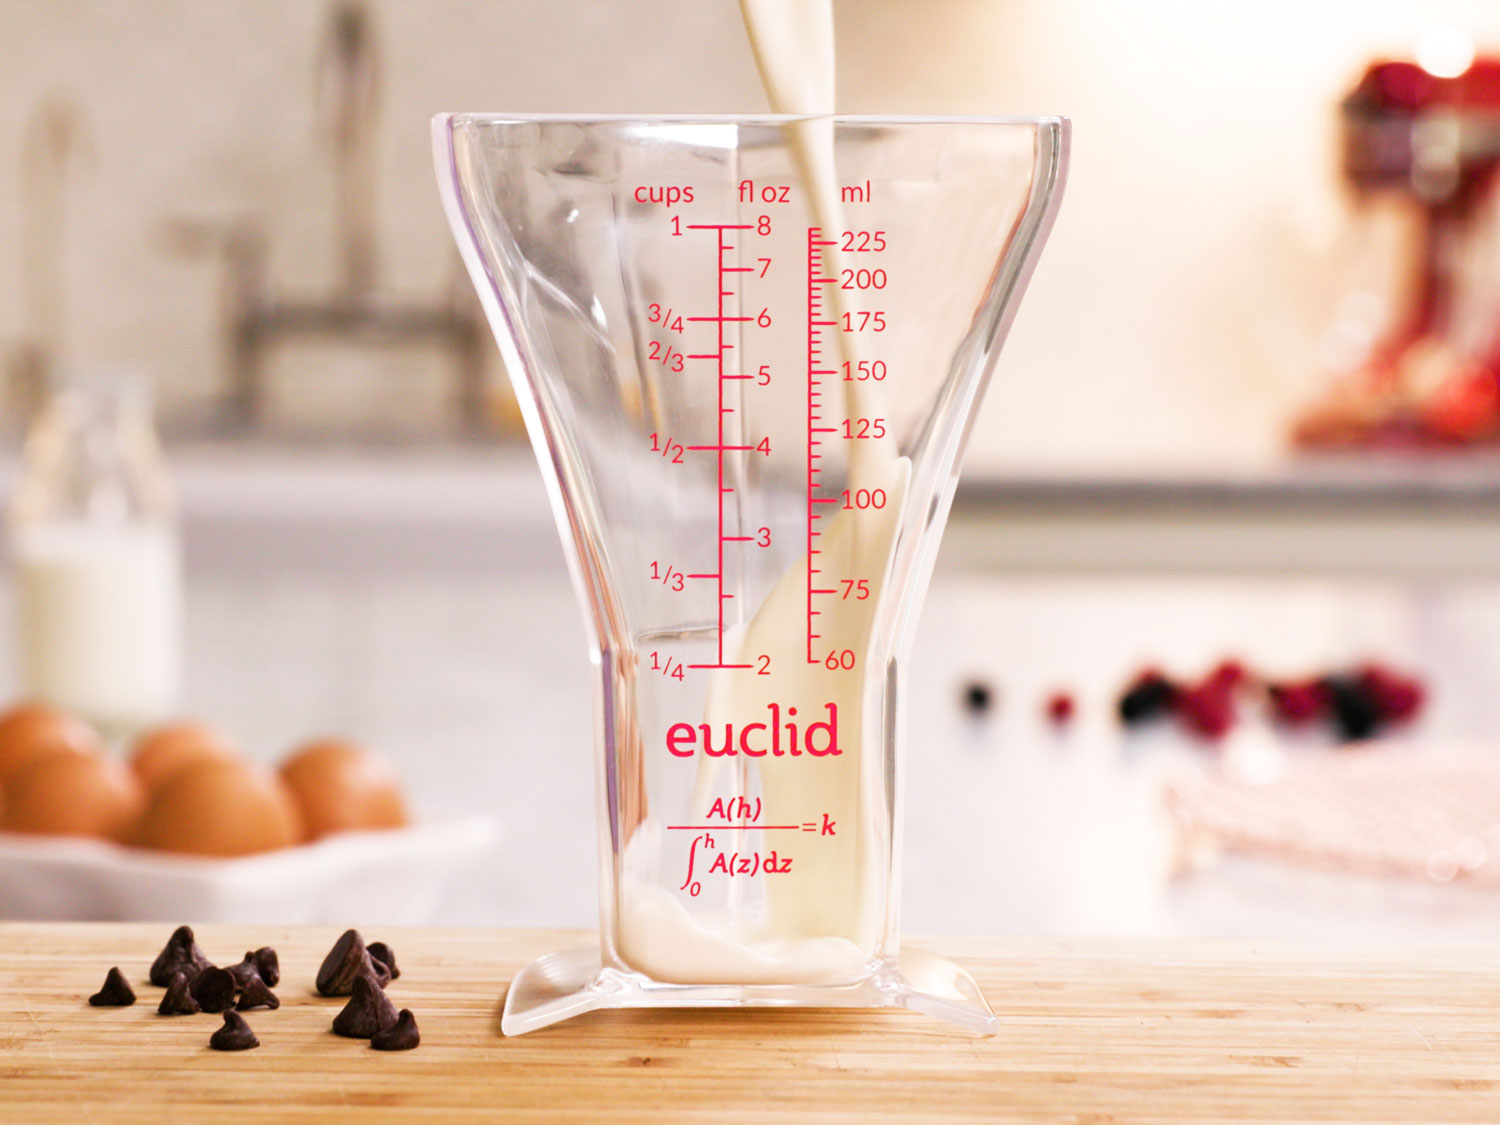 euclid measuring cups